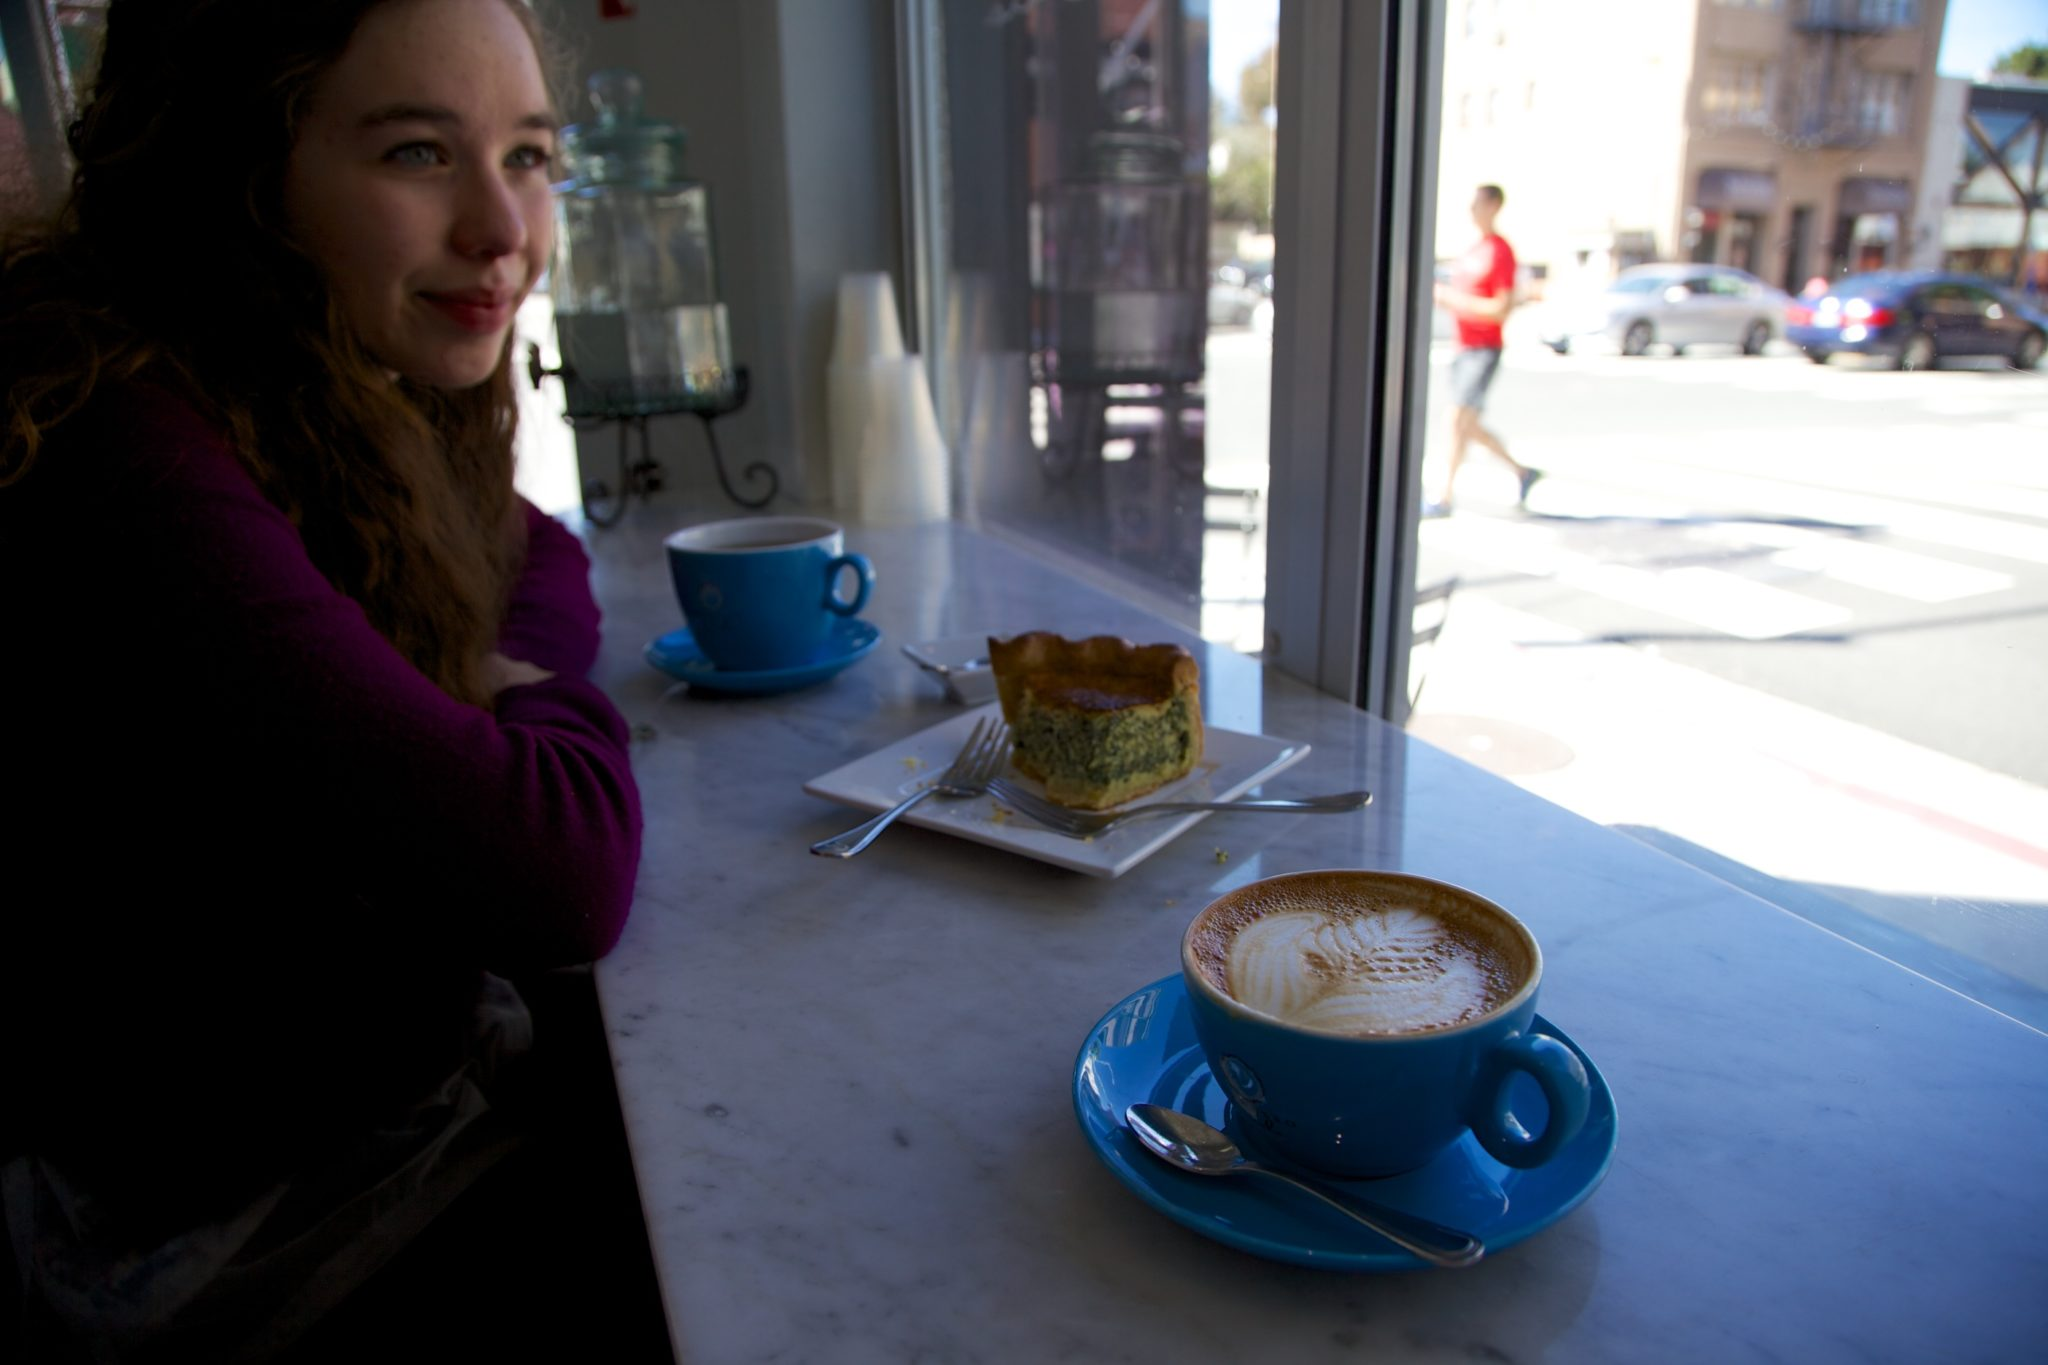 People watching at Espresso Cielo